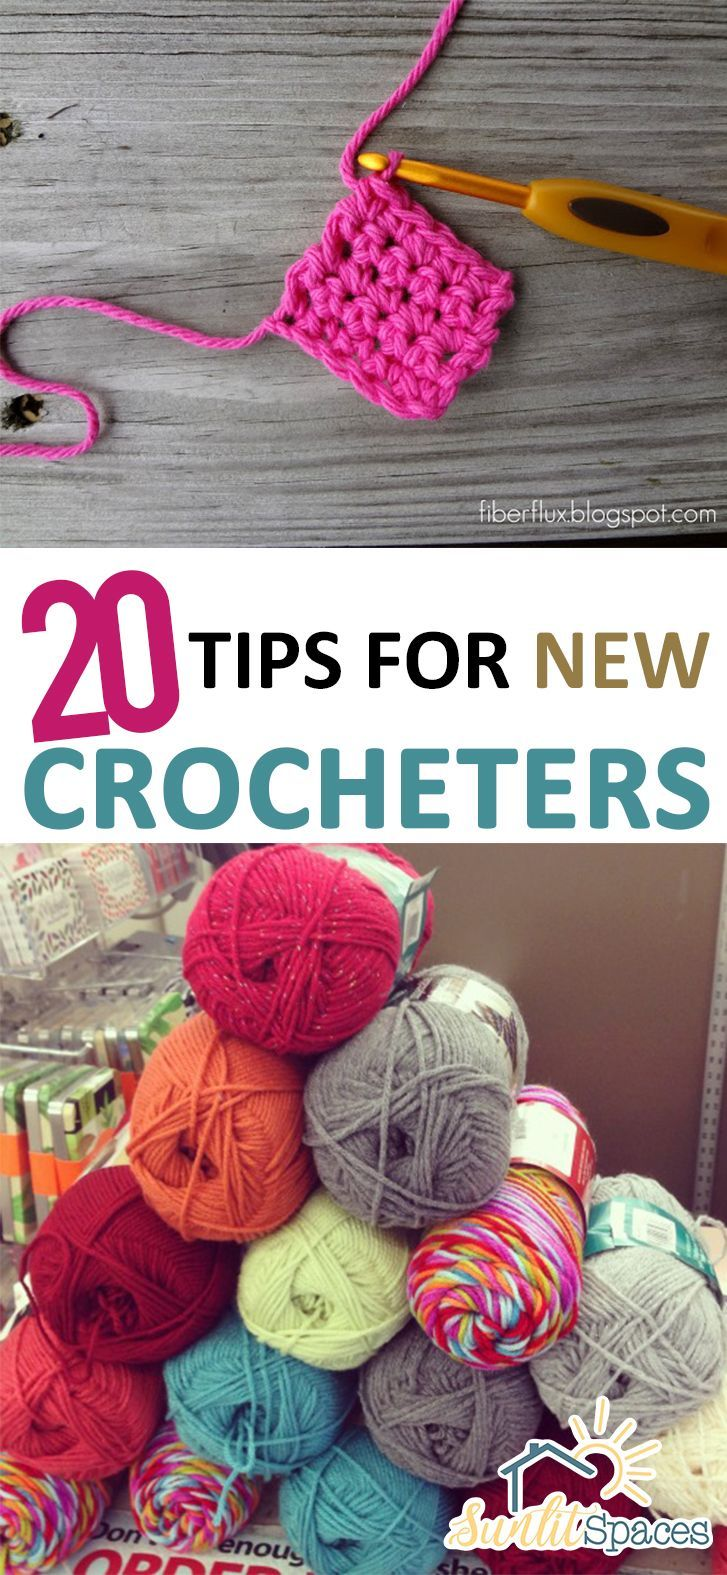 20 Tips for New Crocheters - Page 16 of 22 -